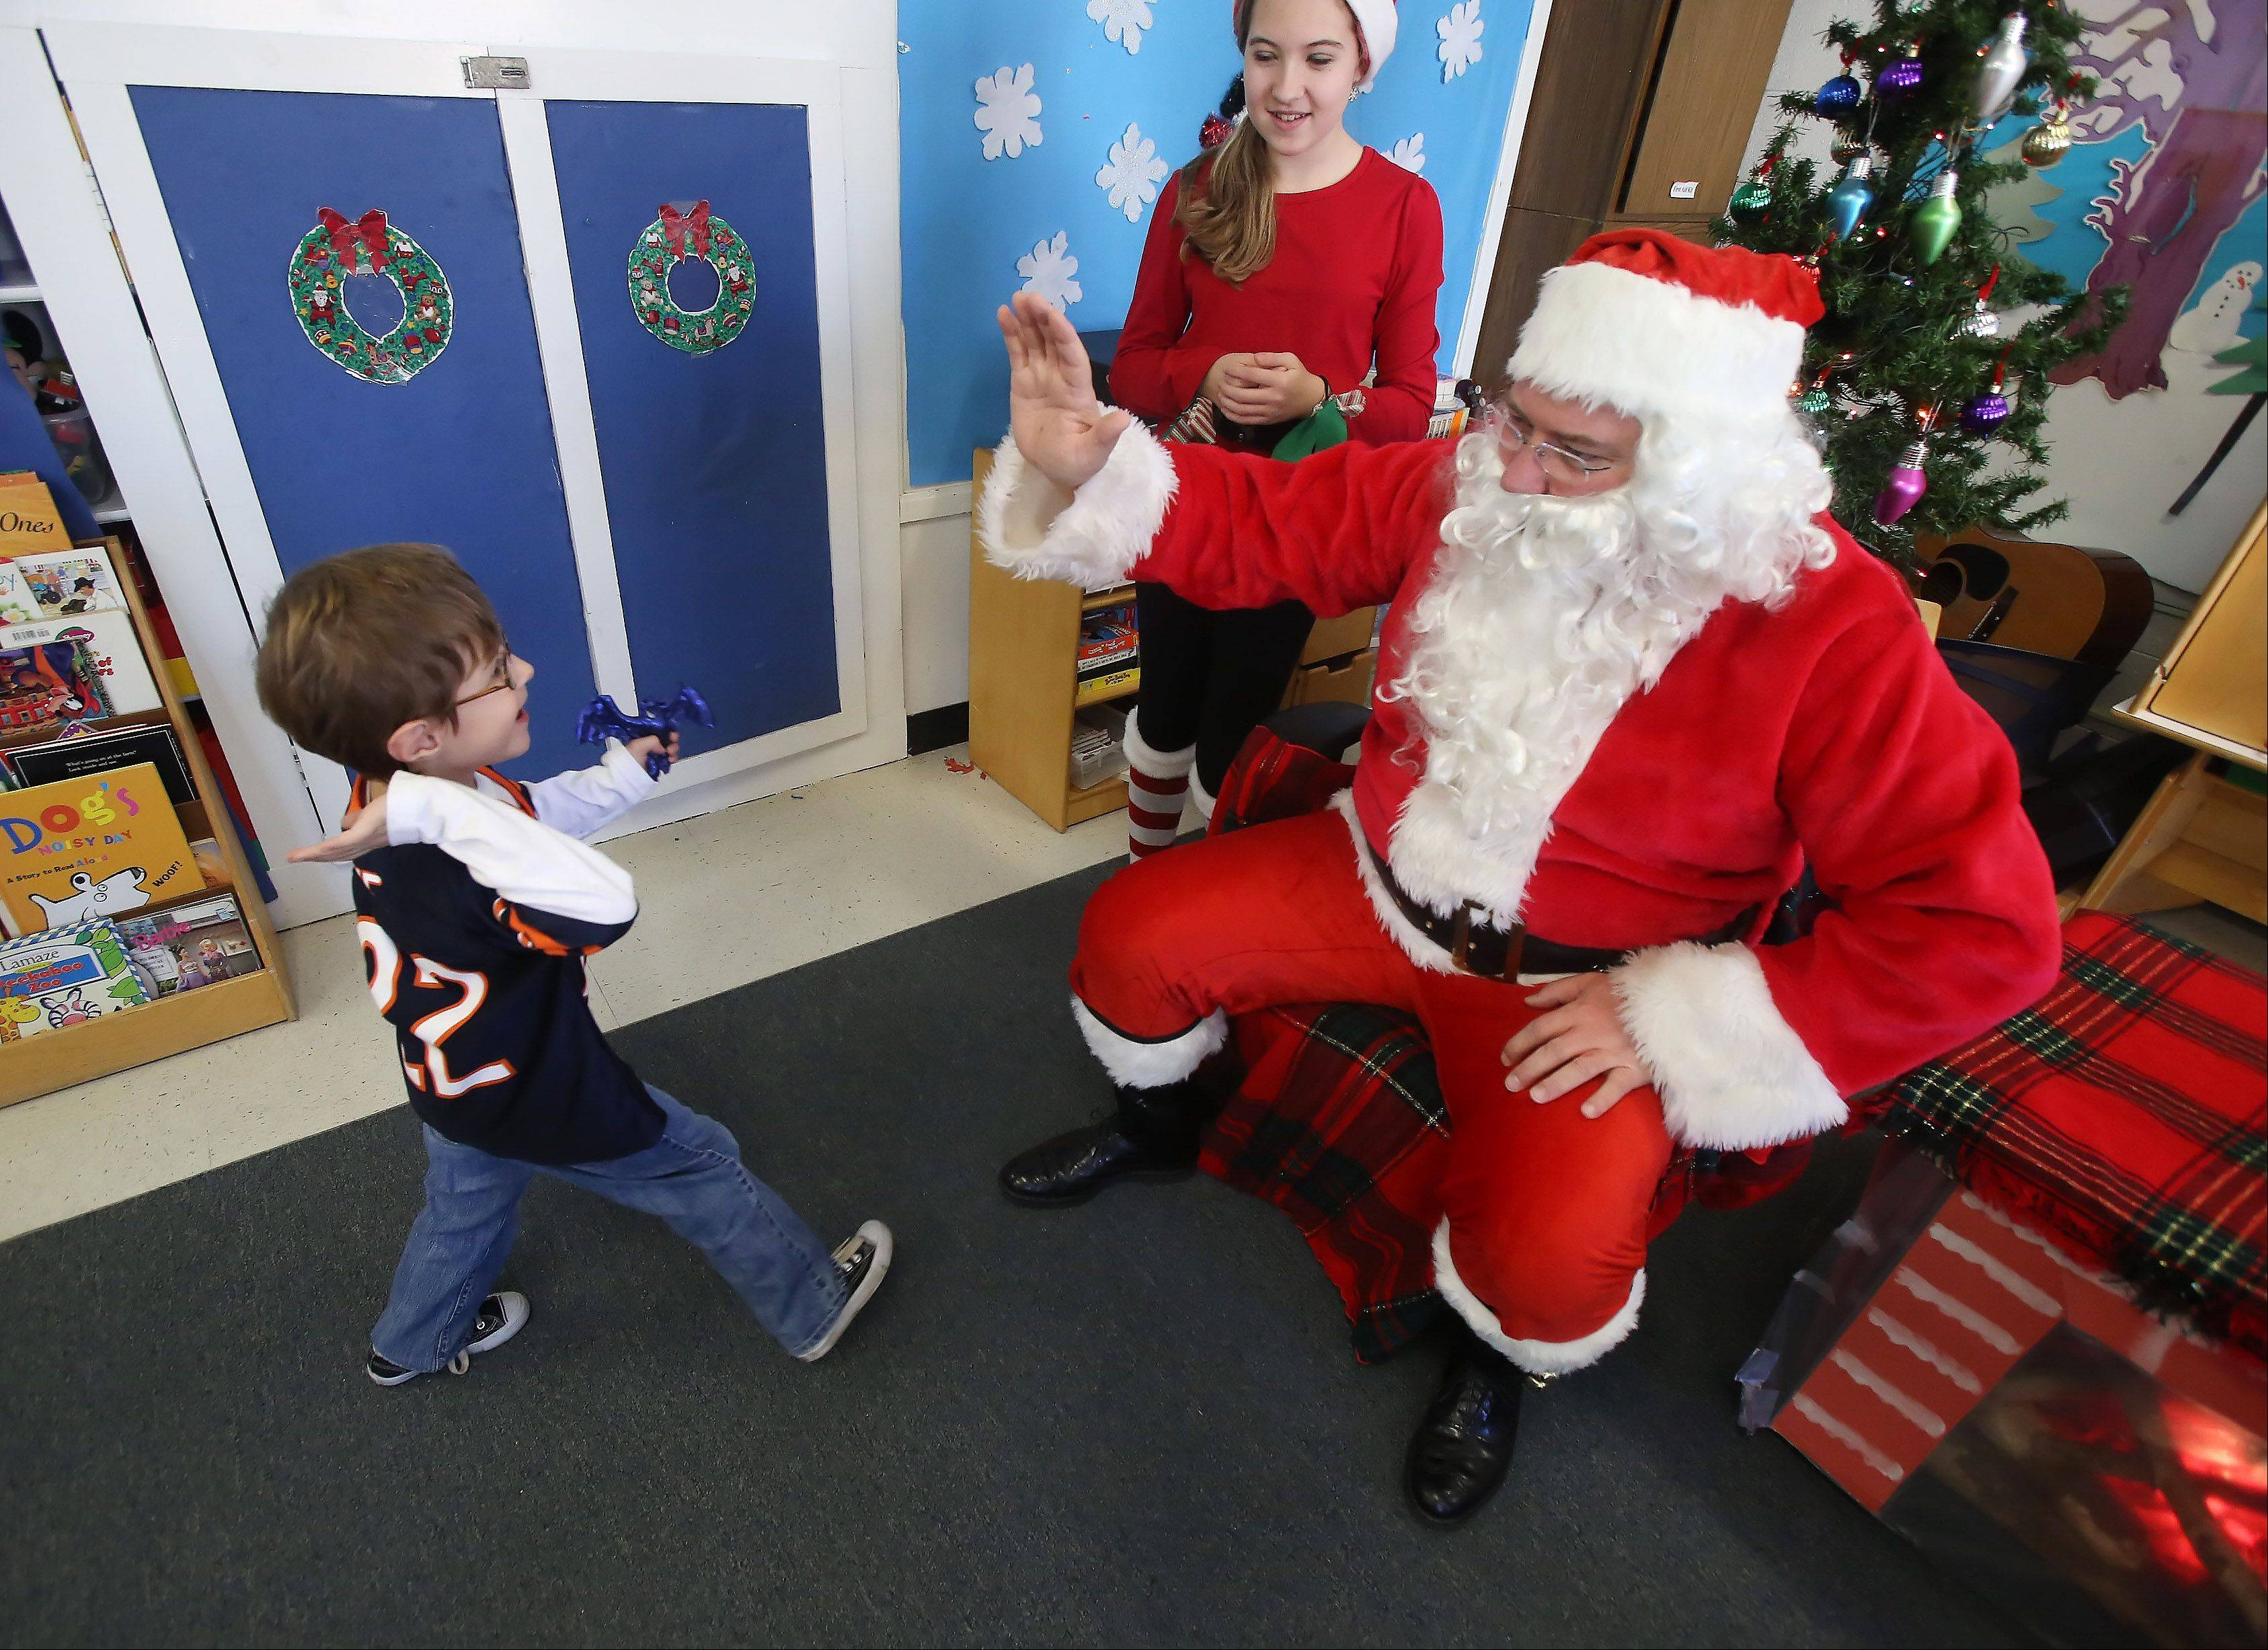 Five-year-old Conor Cook of Prairie Grove comes over to high five Santa Claus (Island Lake Trustee Keith Johns) Sunday during Island Lake's 27th Annual Holiday Craft Fair Sunday at the Island Lake Village Hall. The fair featured almost 45 vendors offering crafts, jewelry, gifts, clothing and more.